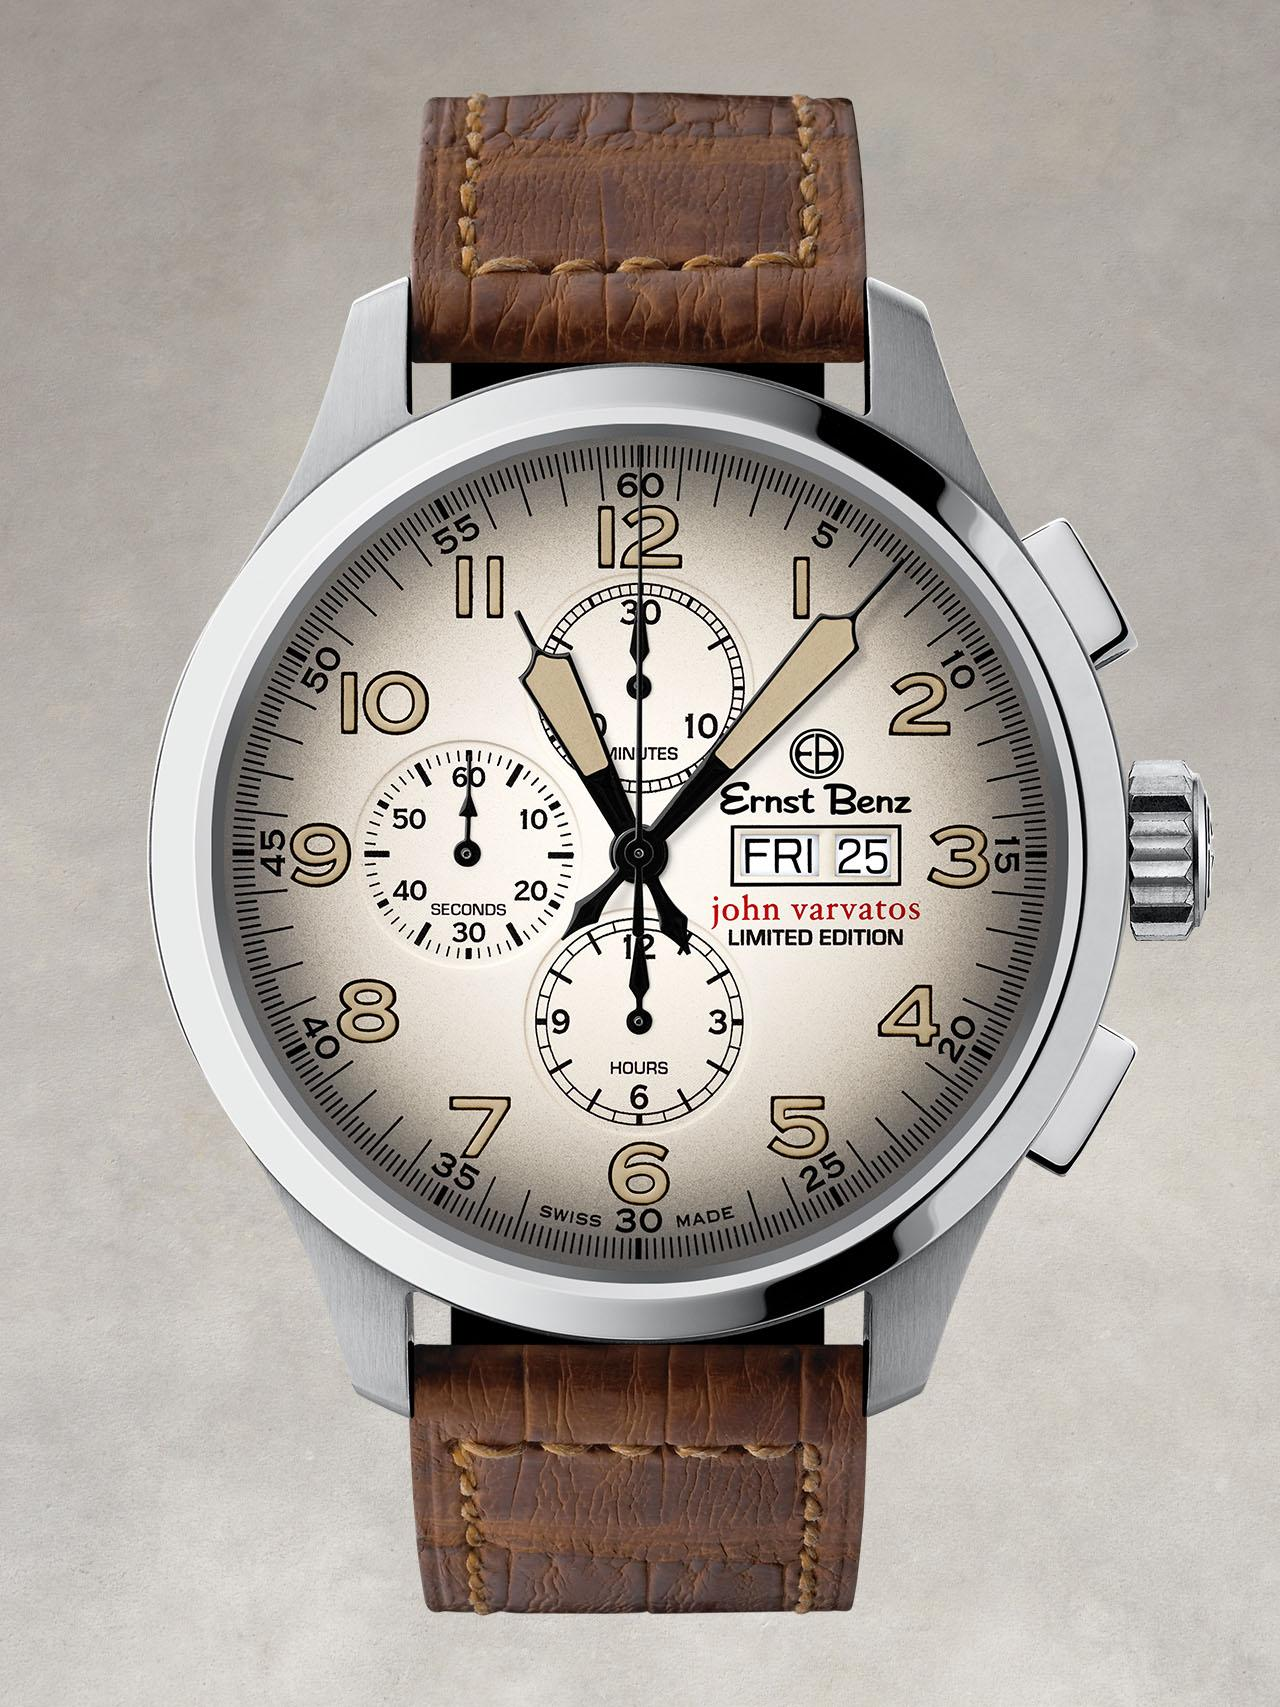 John Varvatos Chronoscope Watch